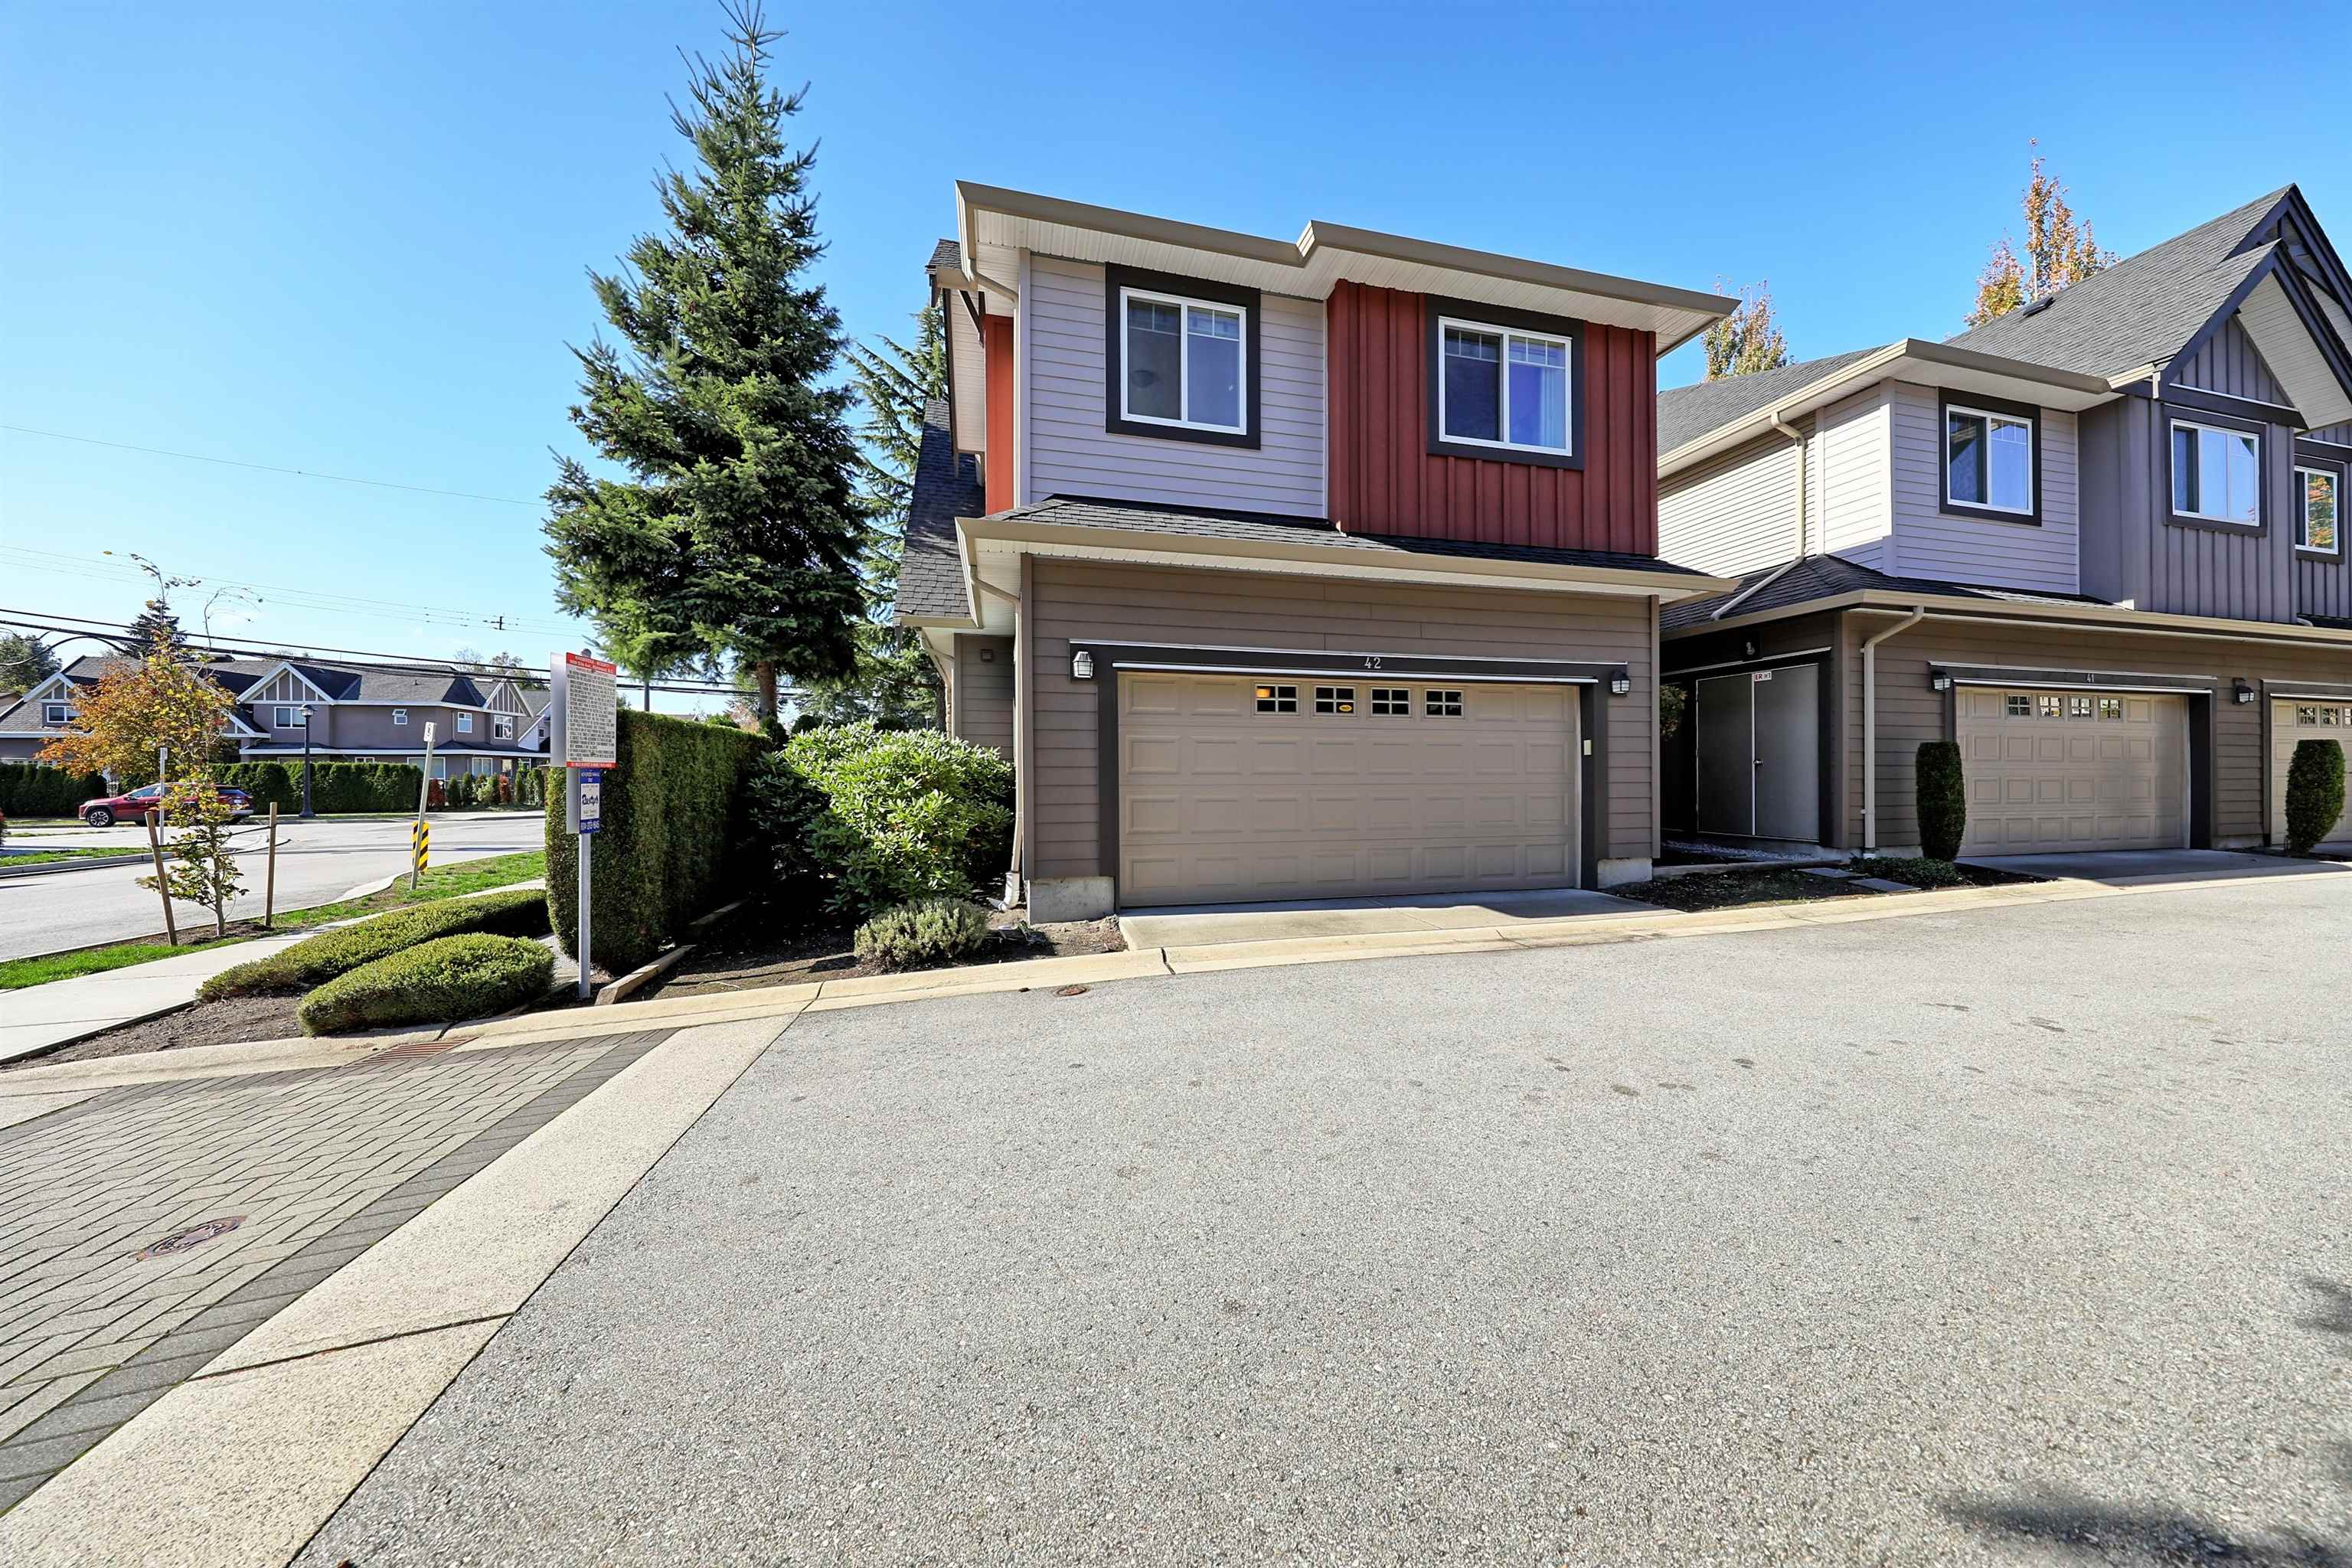 42 9699 SILLS AVENUE - McLennan North Townhouse for sale, 3 Bedrooms (R2625597)